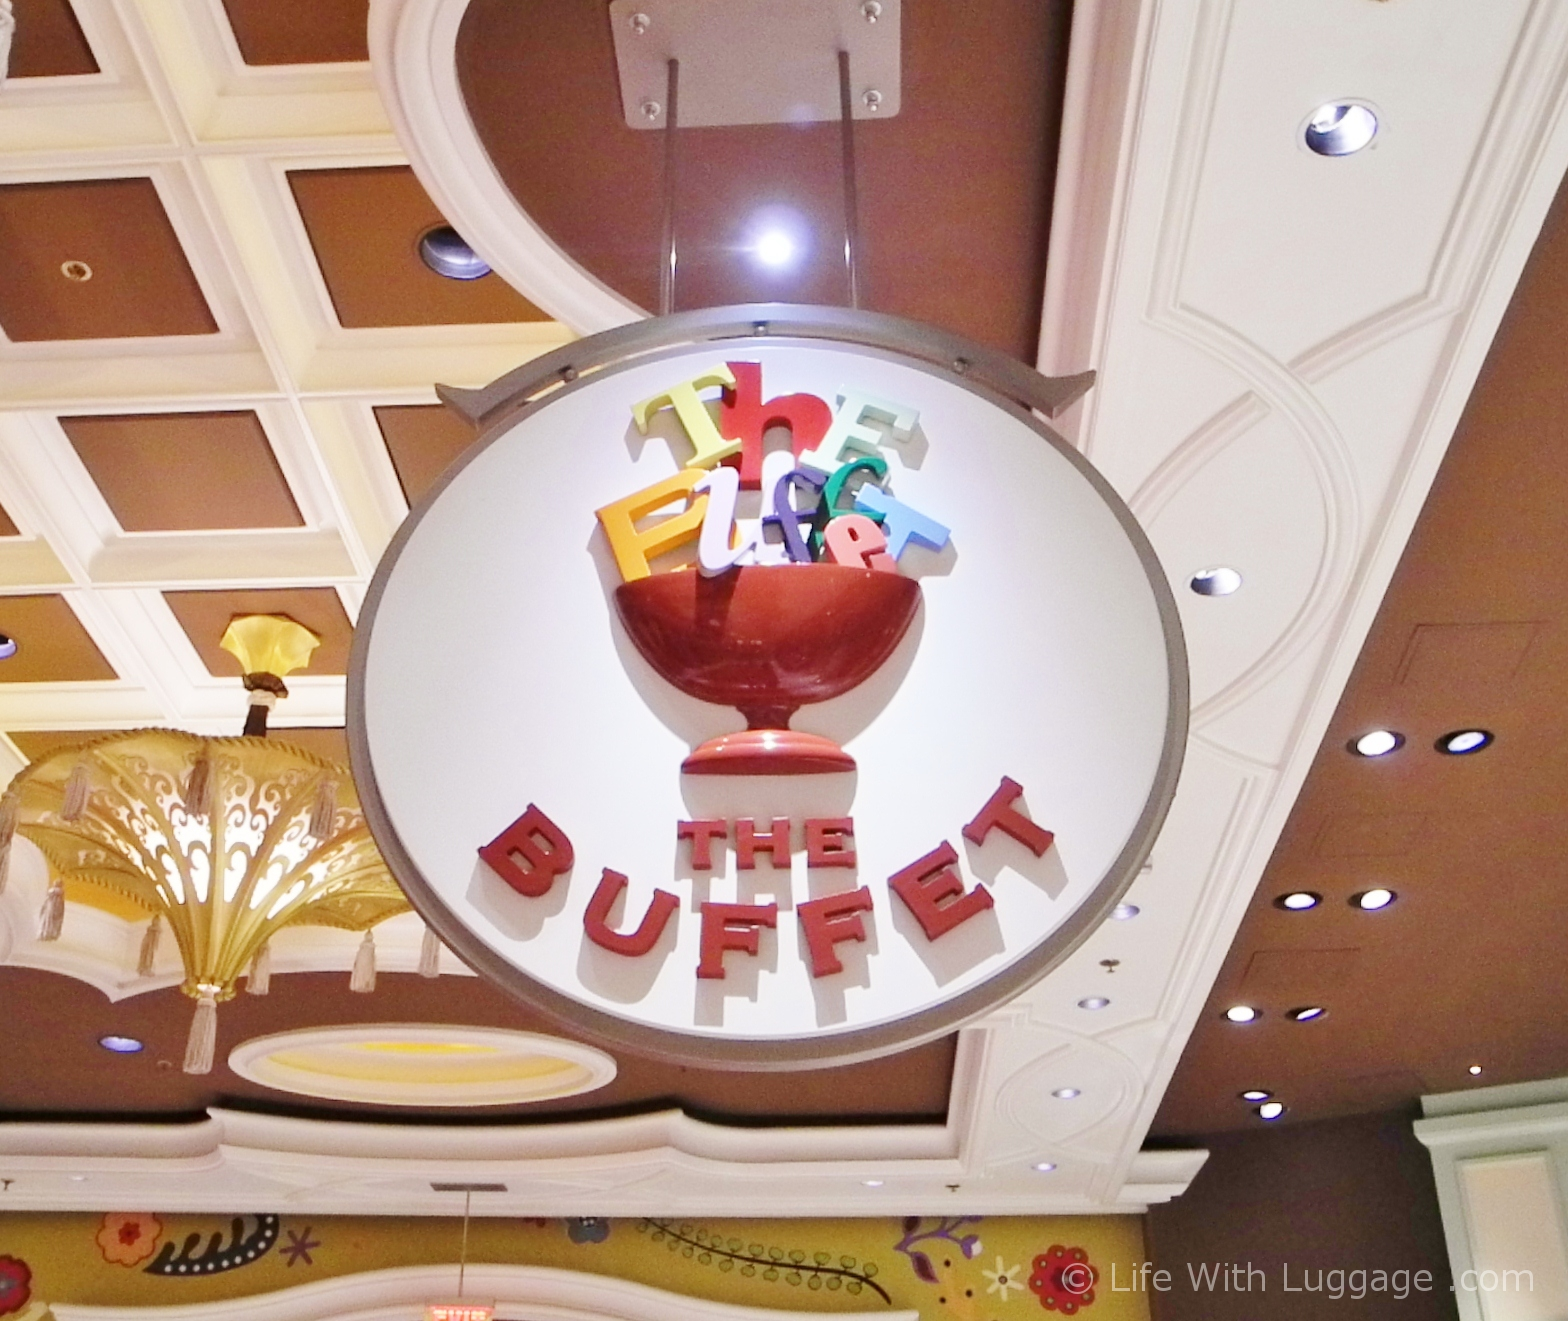 The buffet at the Wynn